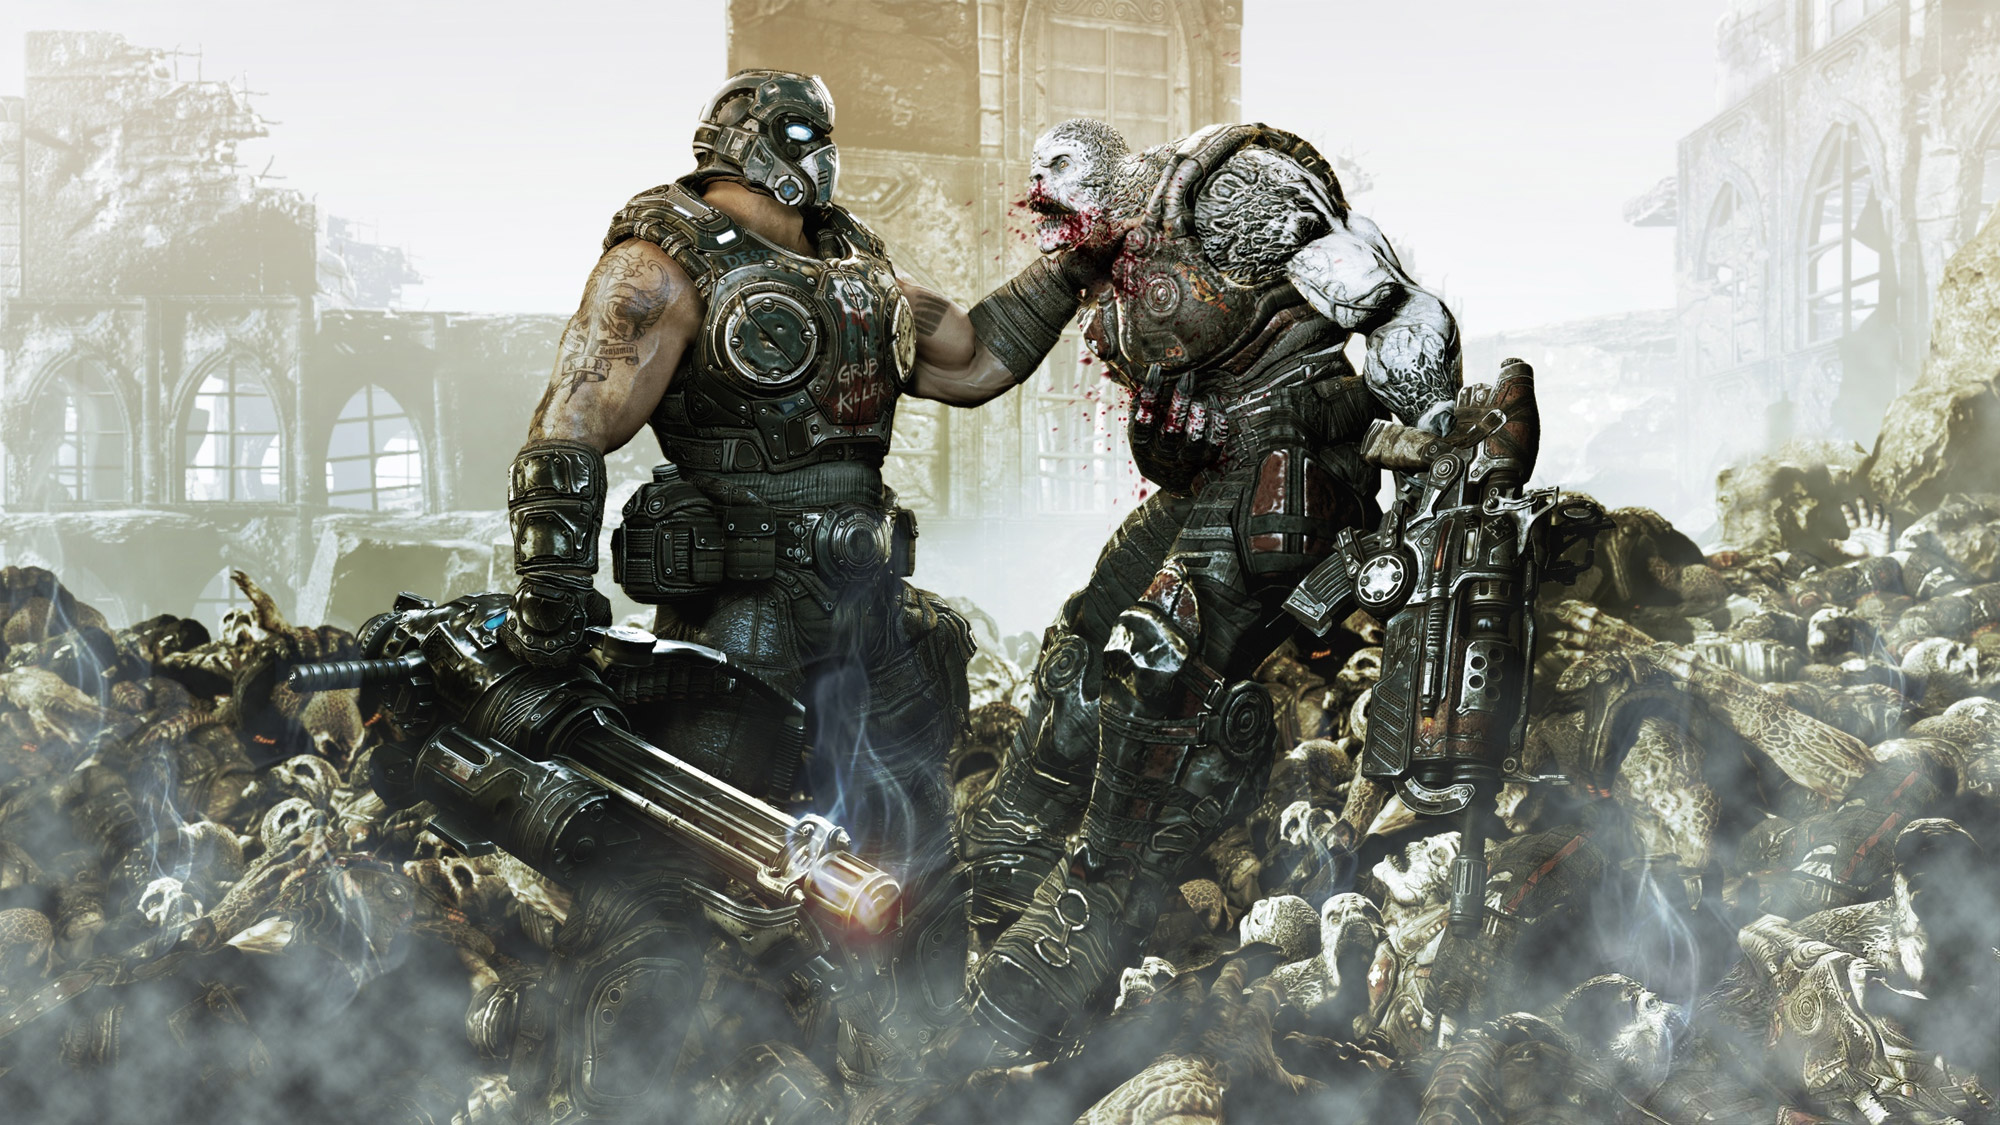 Description Gears of War 3 Wallpapers is a hi res Wallpaper for 2000x1125